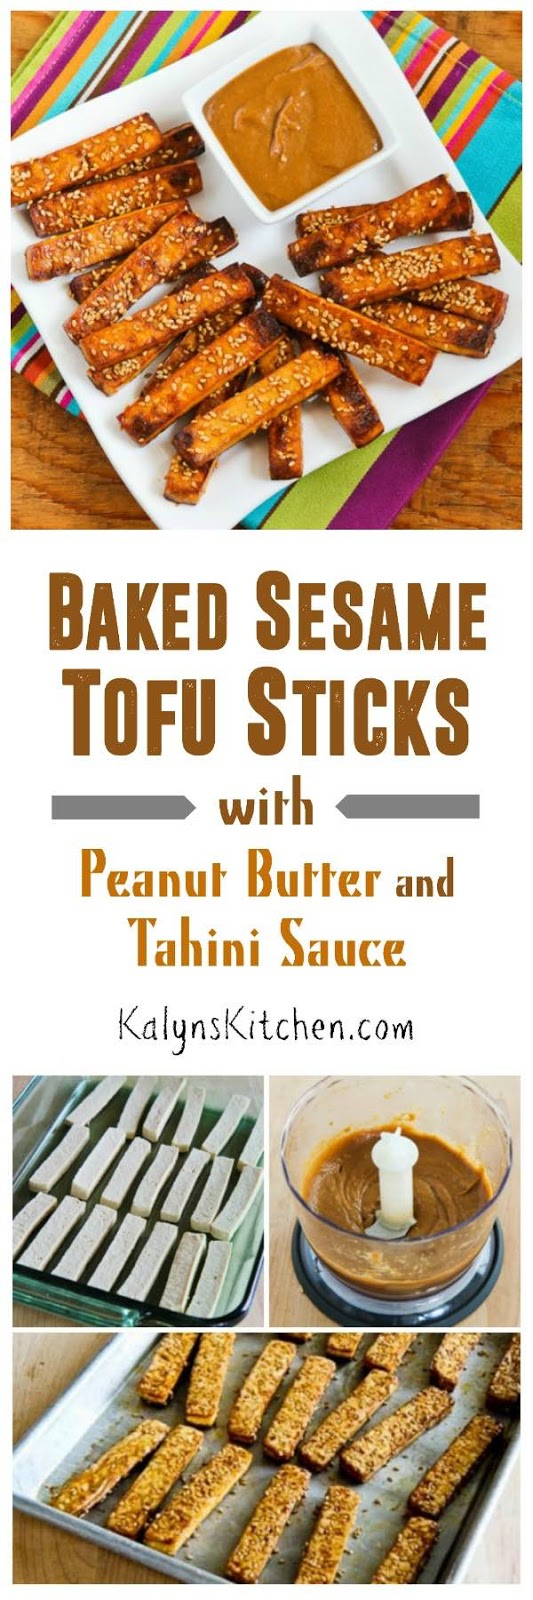 Baked Sesame Tofu Sticks with Peanut Butter and Tahini Sauce found on ...